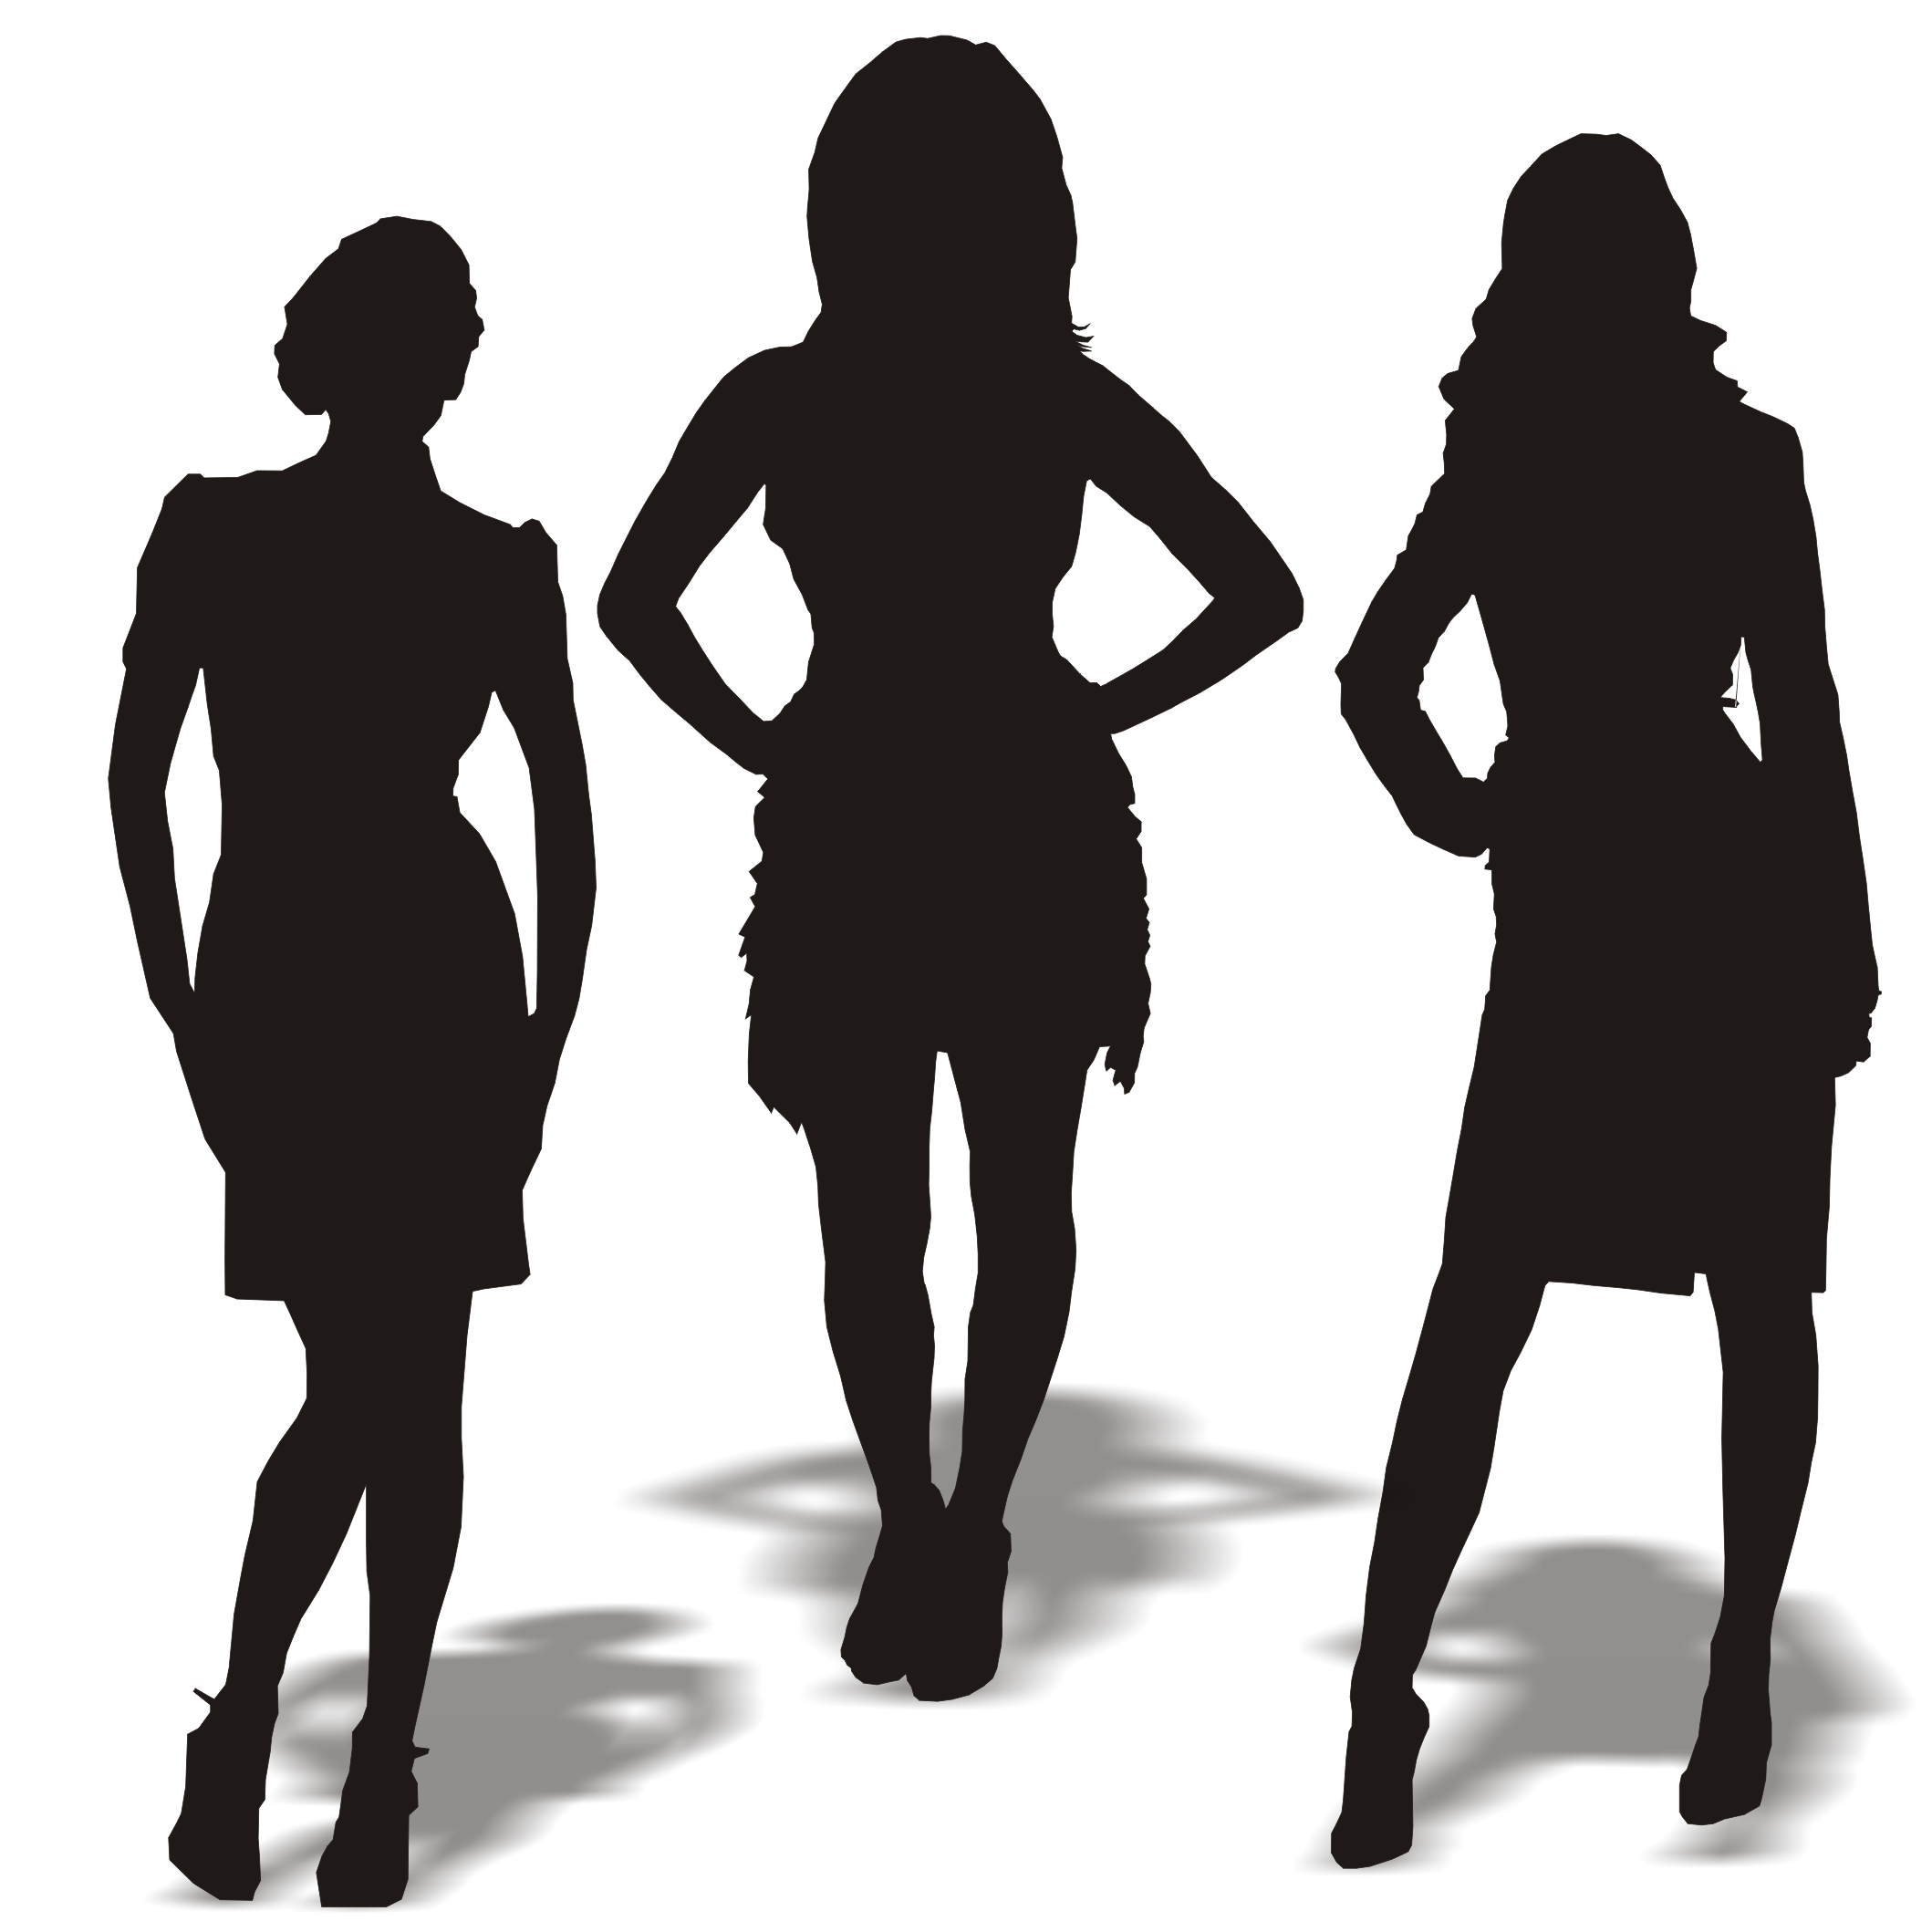 9 Businesswoman Silhouette Vector Images